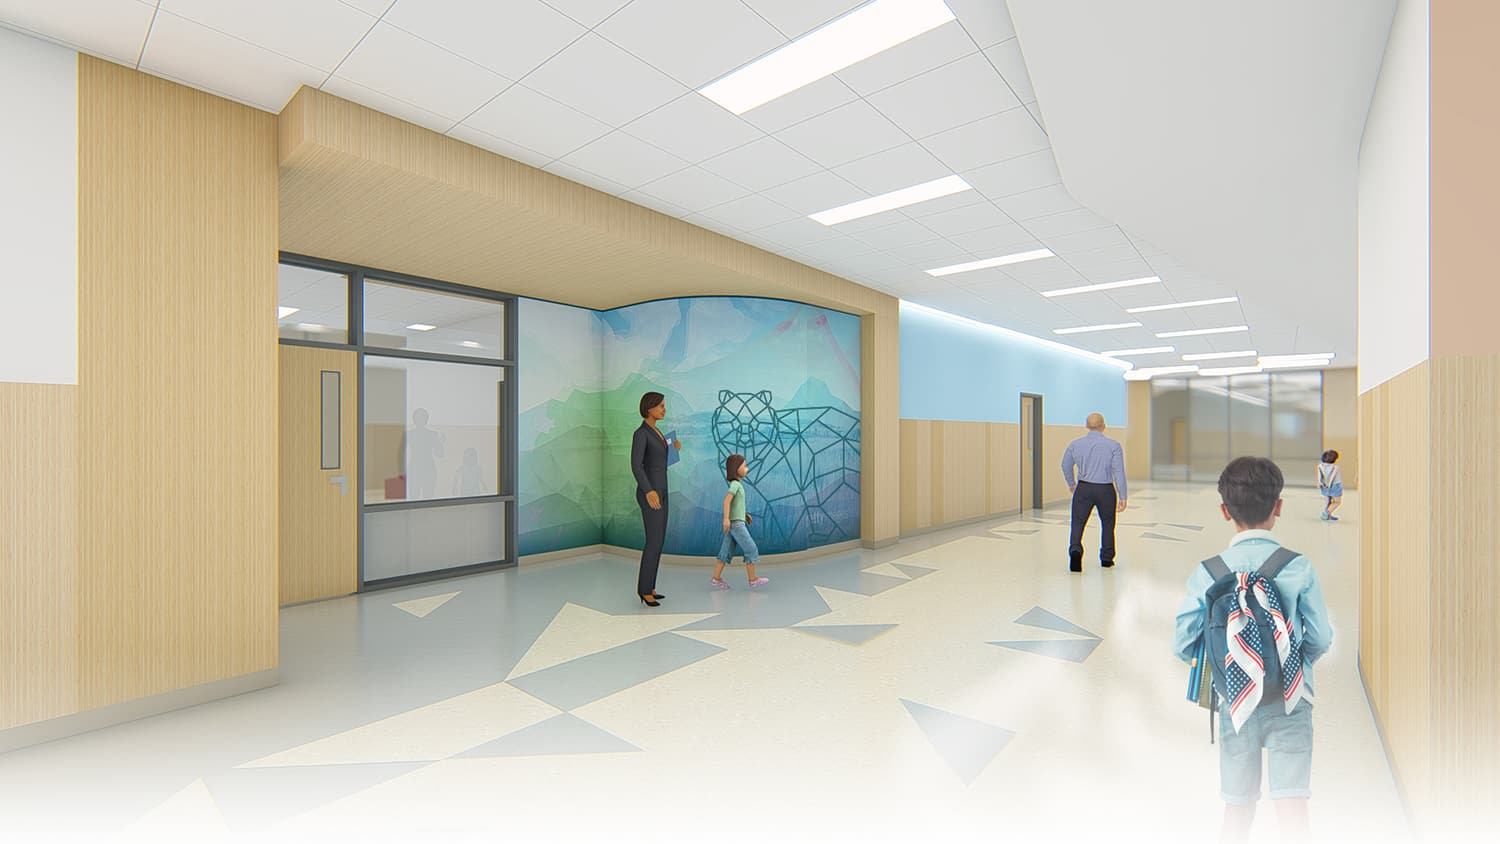 Rendering of an interior classroom entry with a graphic wall mural.